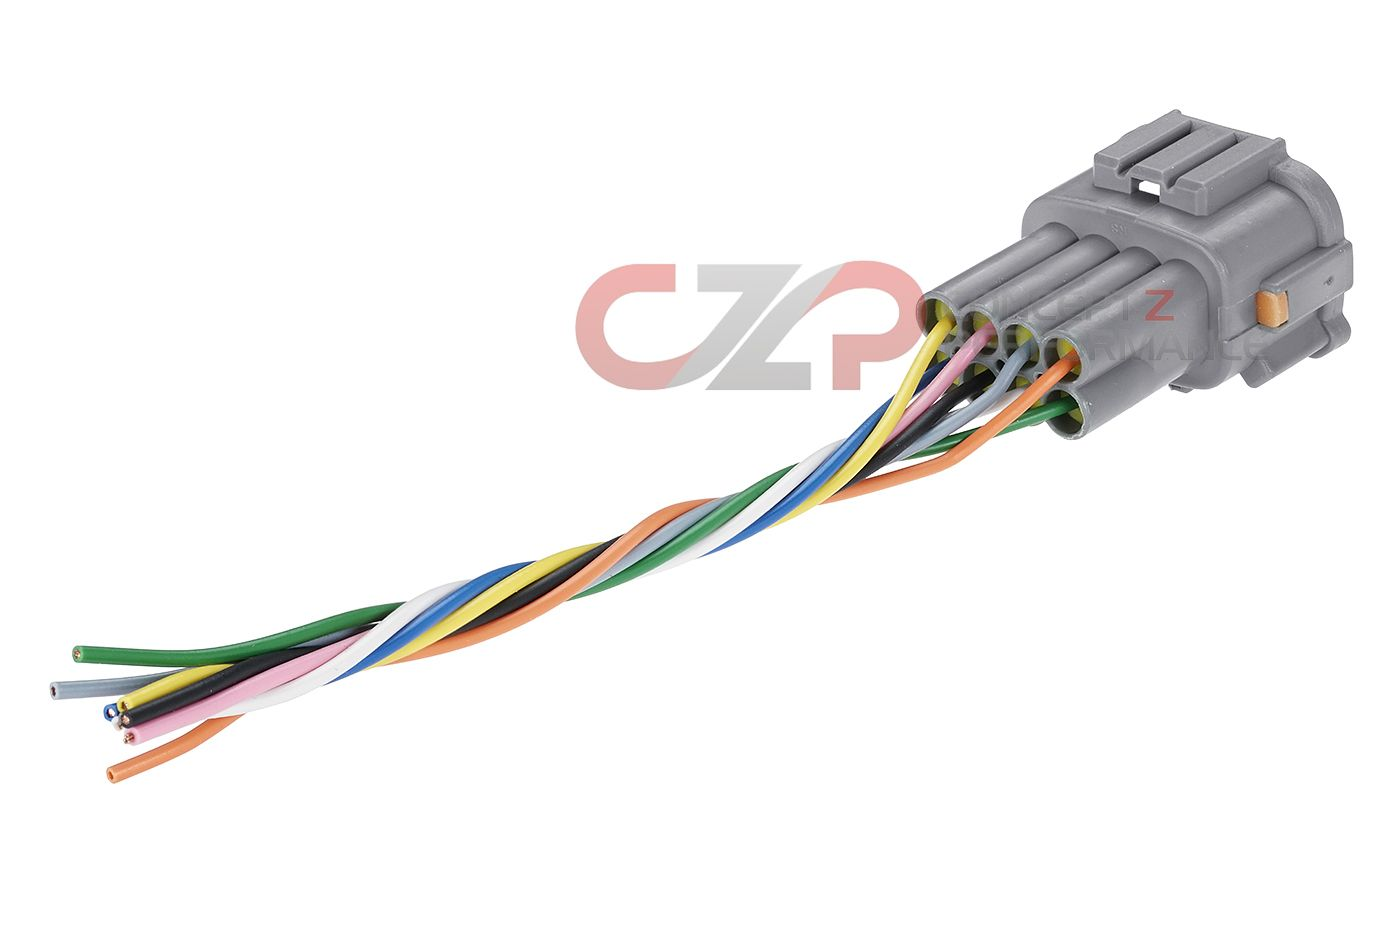 Czp Xenon Hid Headlight Connector W Pigtails 8 Pin Male Nissan 2006 350z Fuse Box On Sale